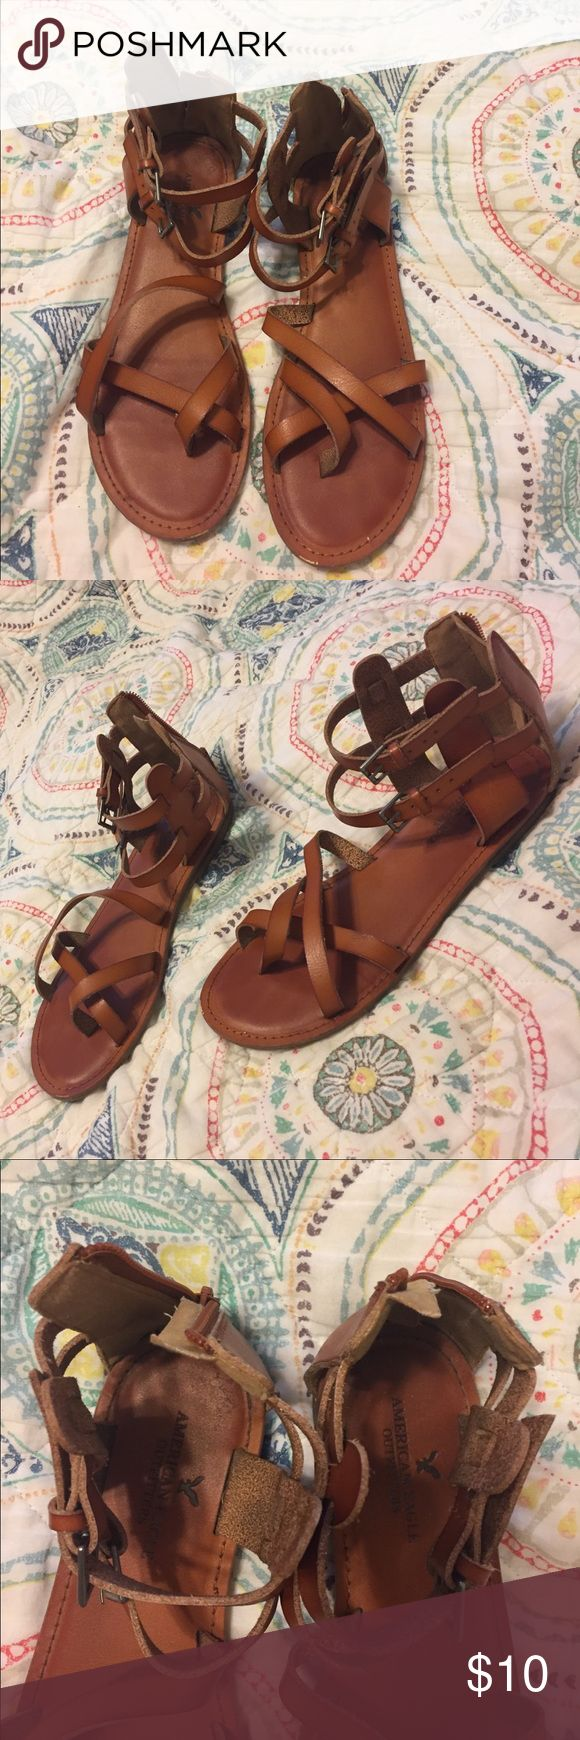 Sandals American Eagle strappy tan sandals American Eagle Outfitters Shoes Sandals